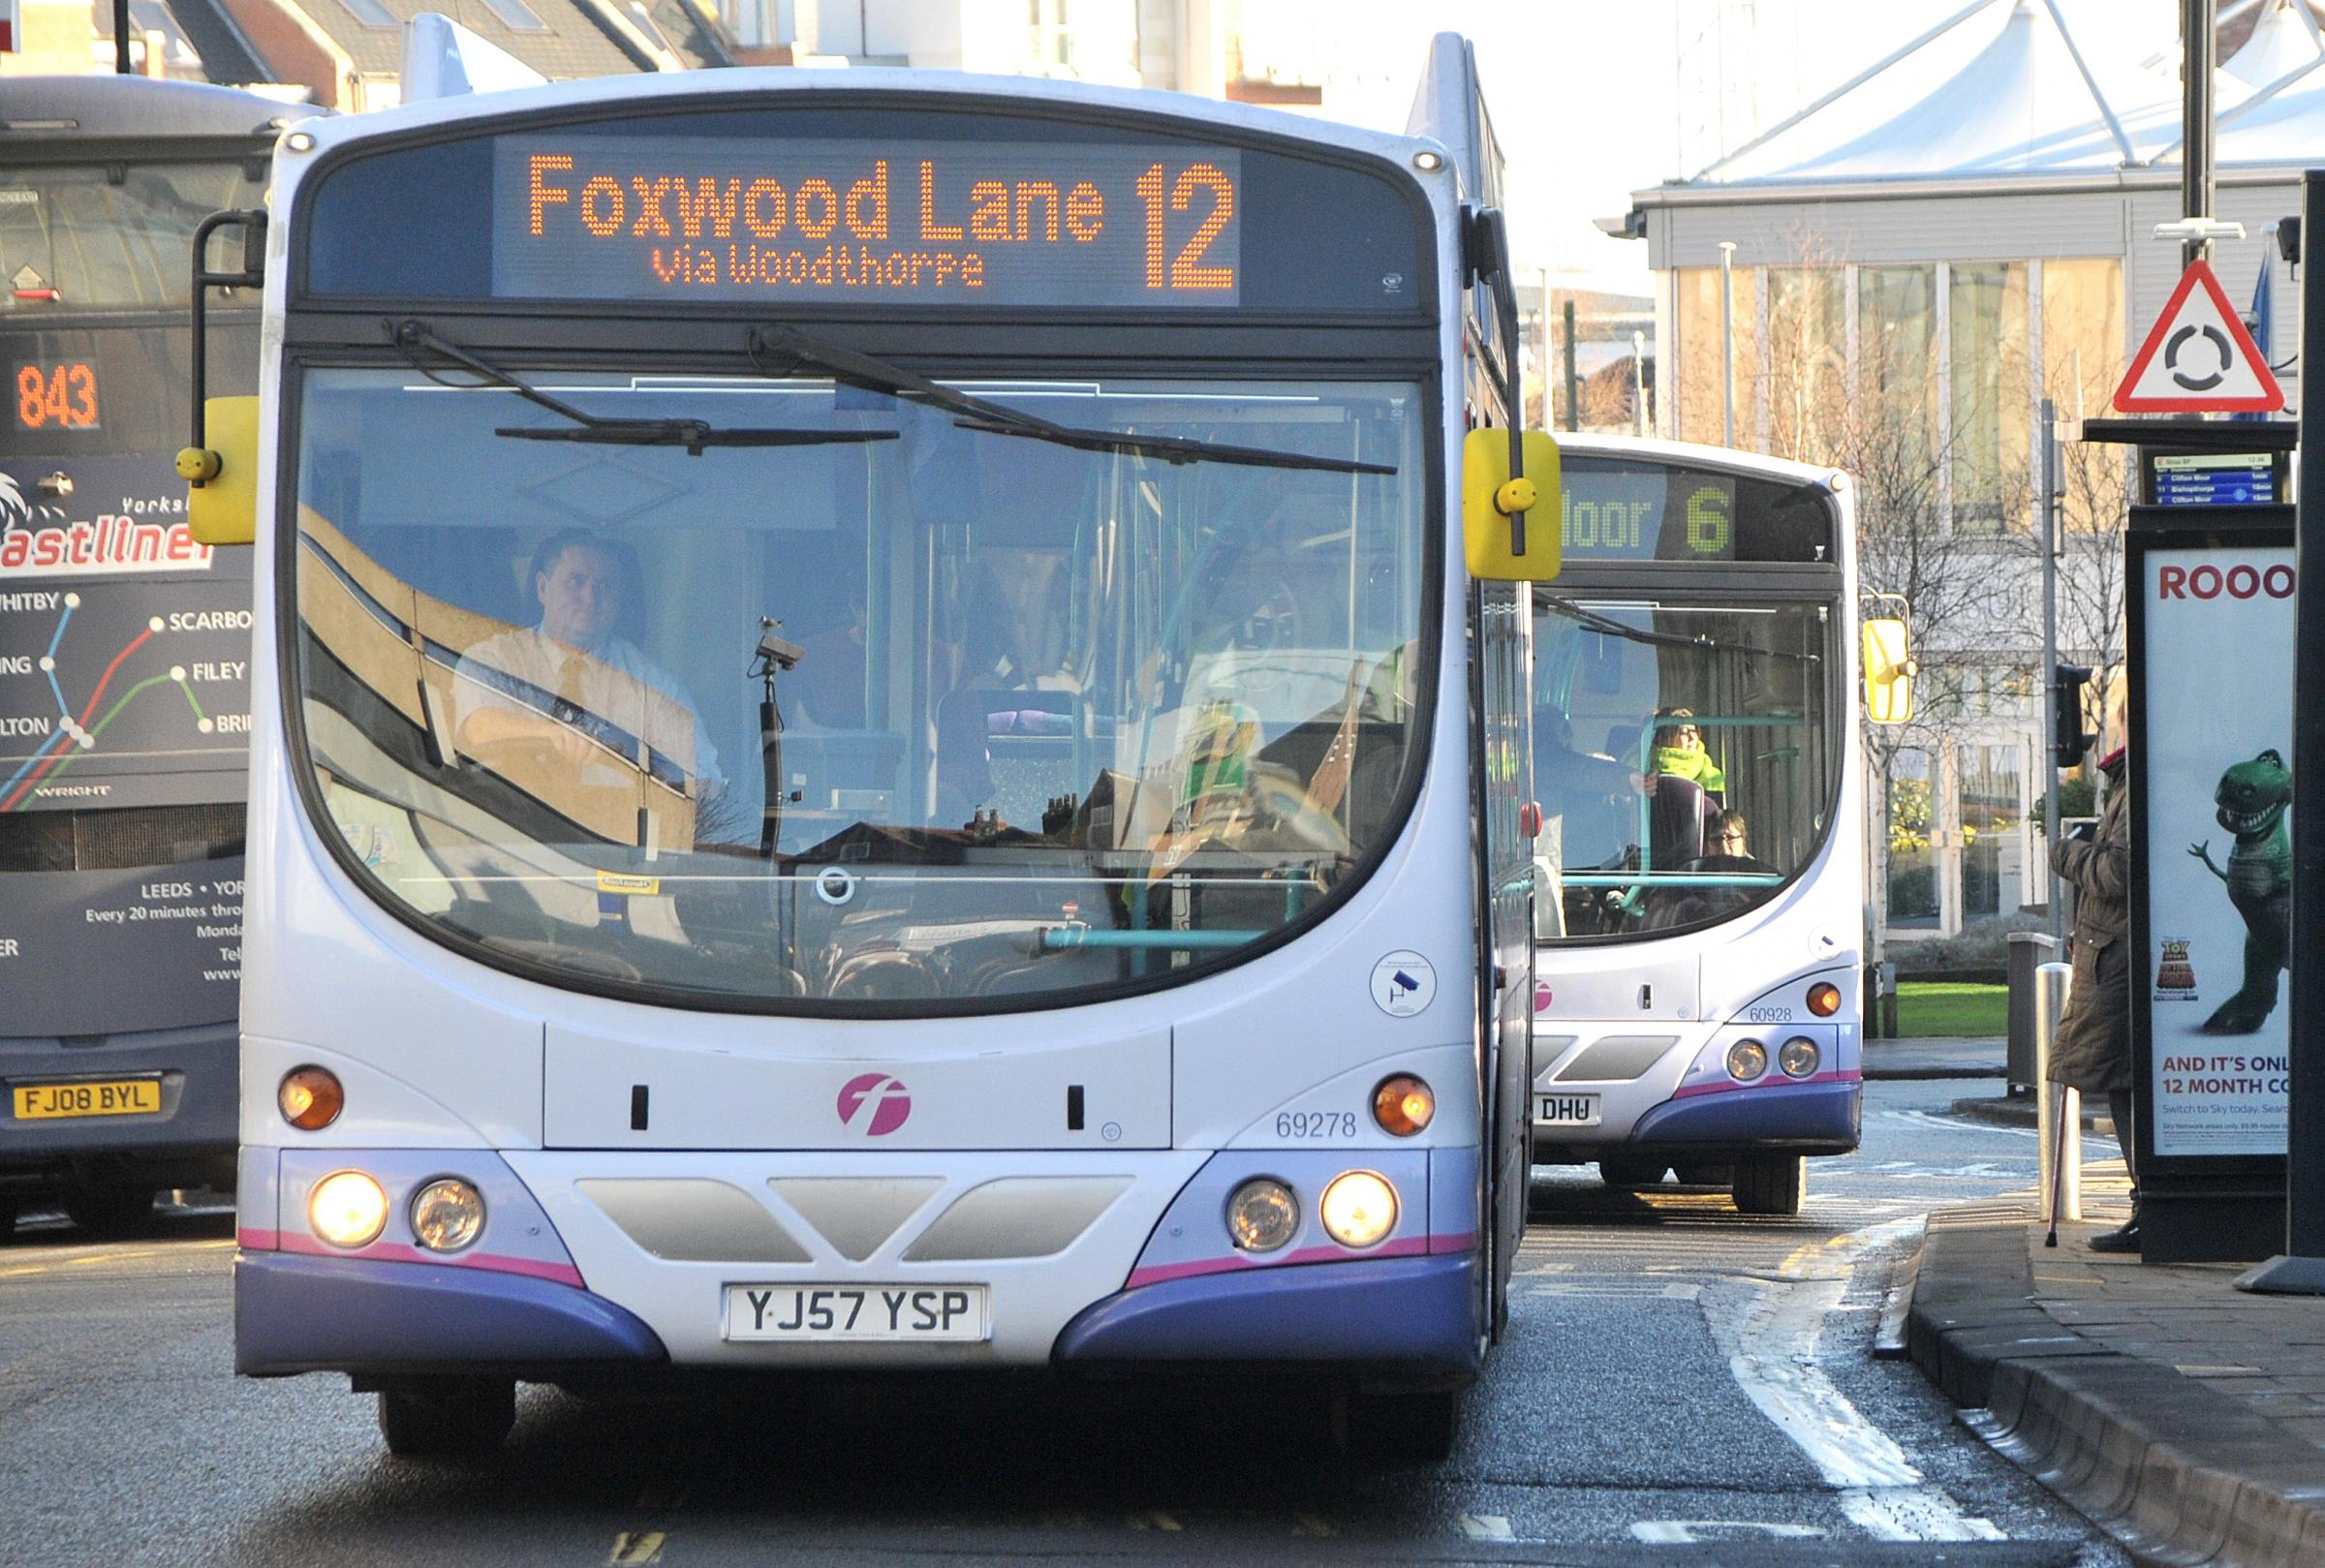 The No 12 bus to Foxwood Lane, York - one of a number of bus routes which could be cut